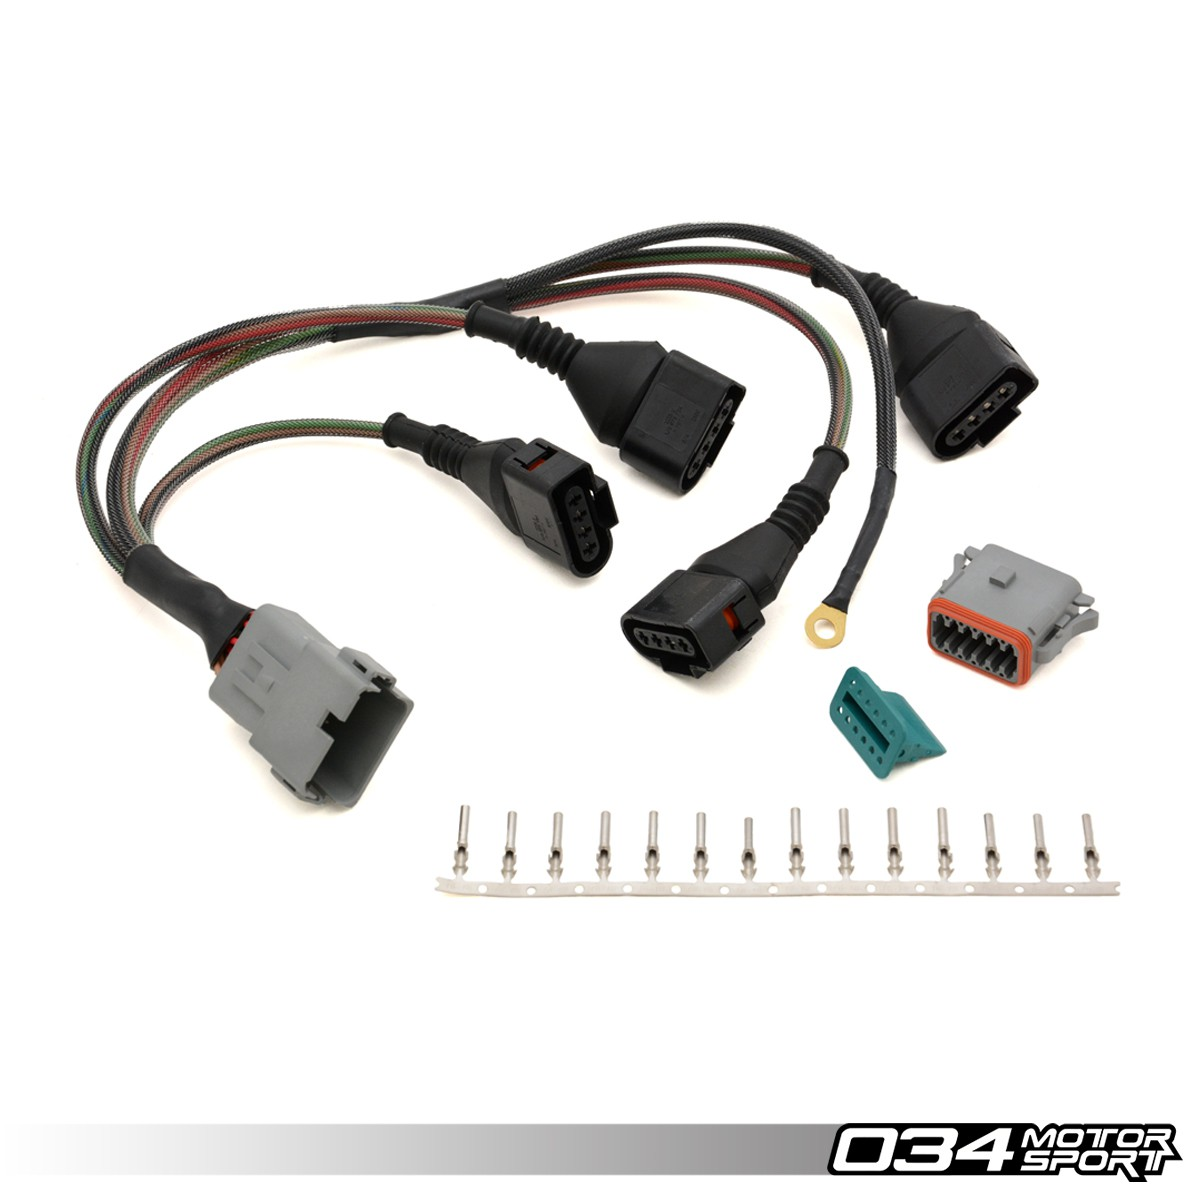 repair update harness audi volkswagen 18t with 4 wire coils 034motorsport 034 701 0004 2 repair update harness, audi volkswagen 1 8t with 4 wire coils  at bakdesigns.co